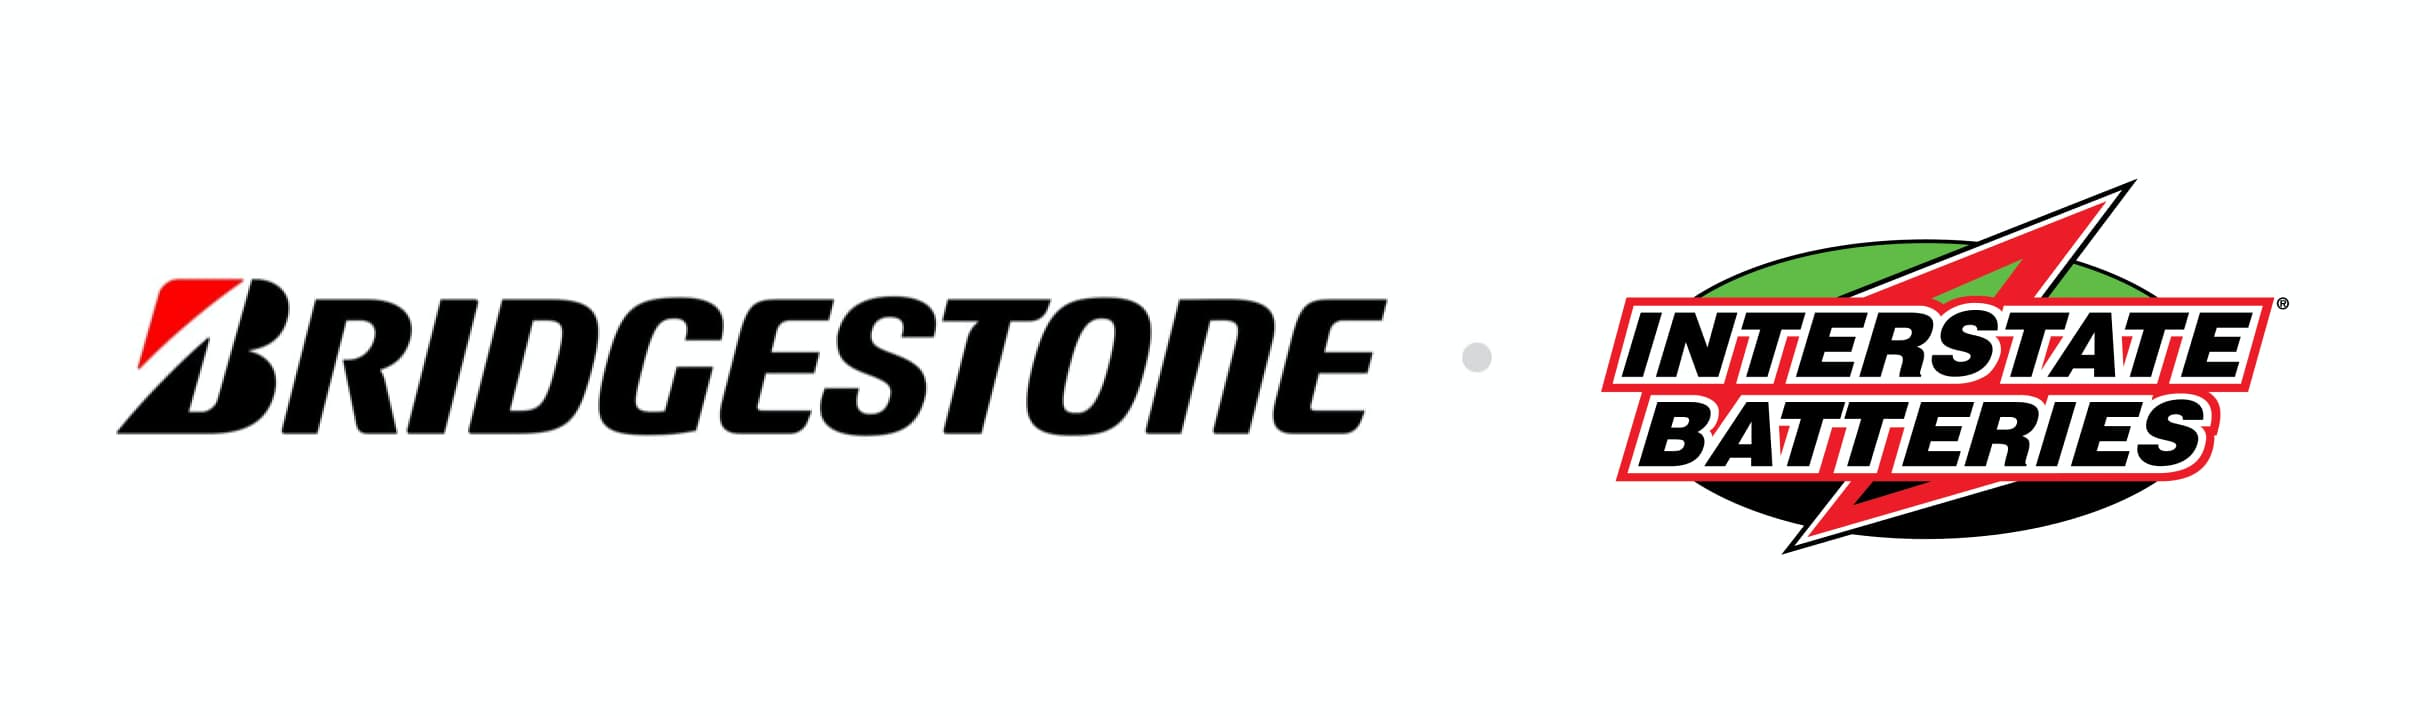 Bridgestone interstate